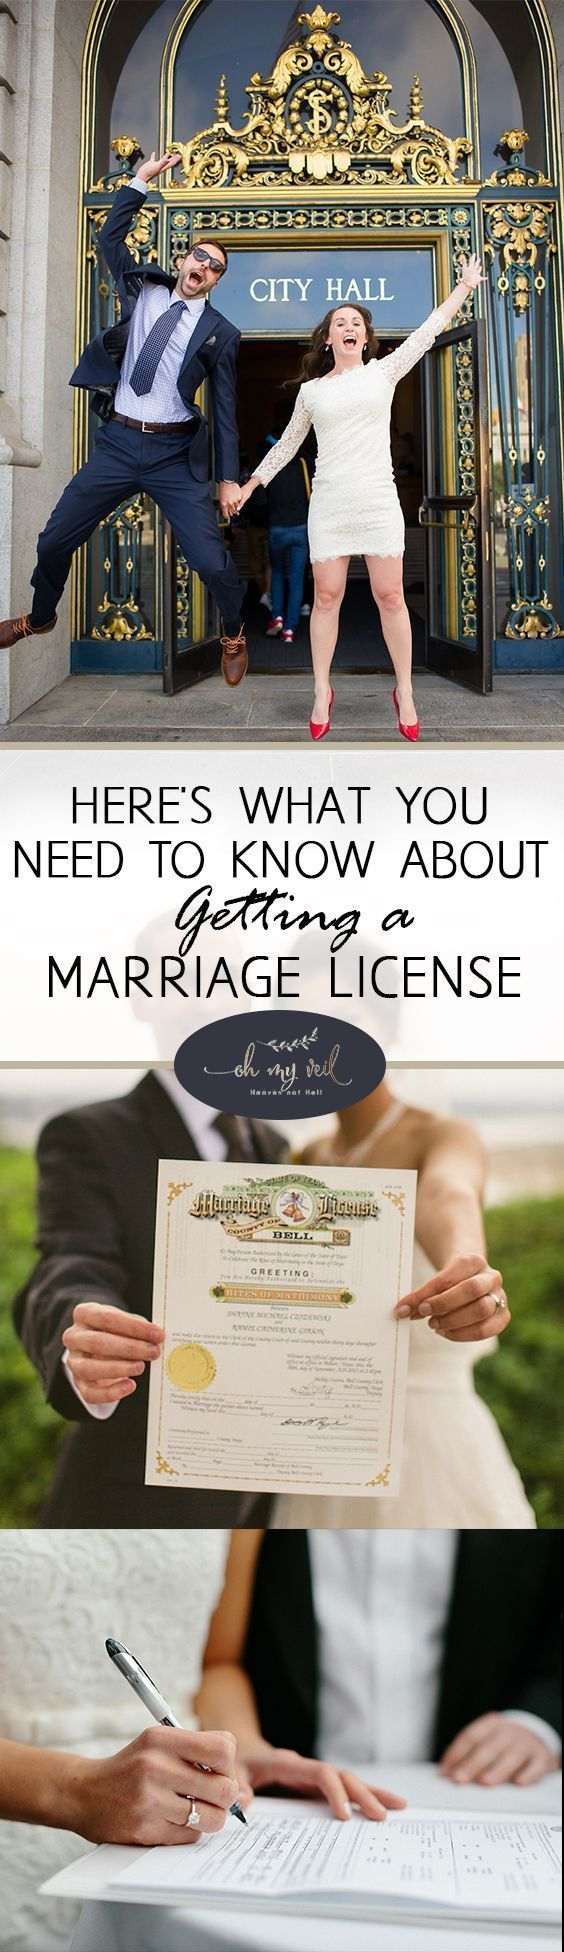 Here's What You Need to Know About Getting a Marriage